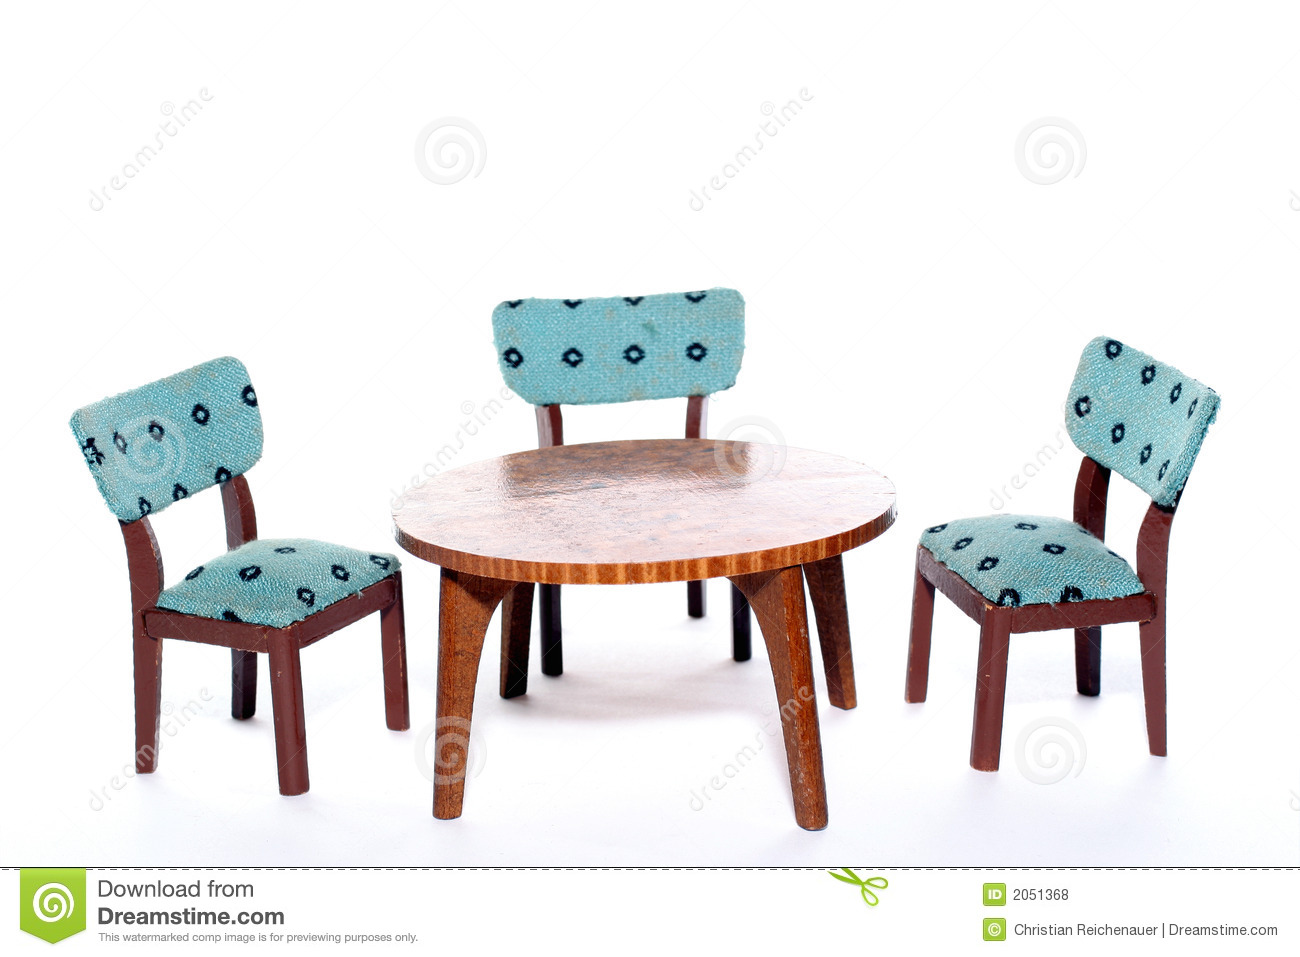 Chairs round a table